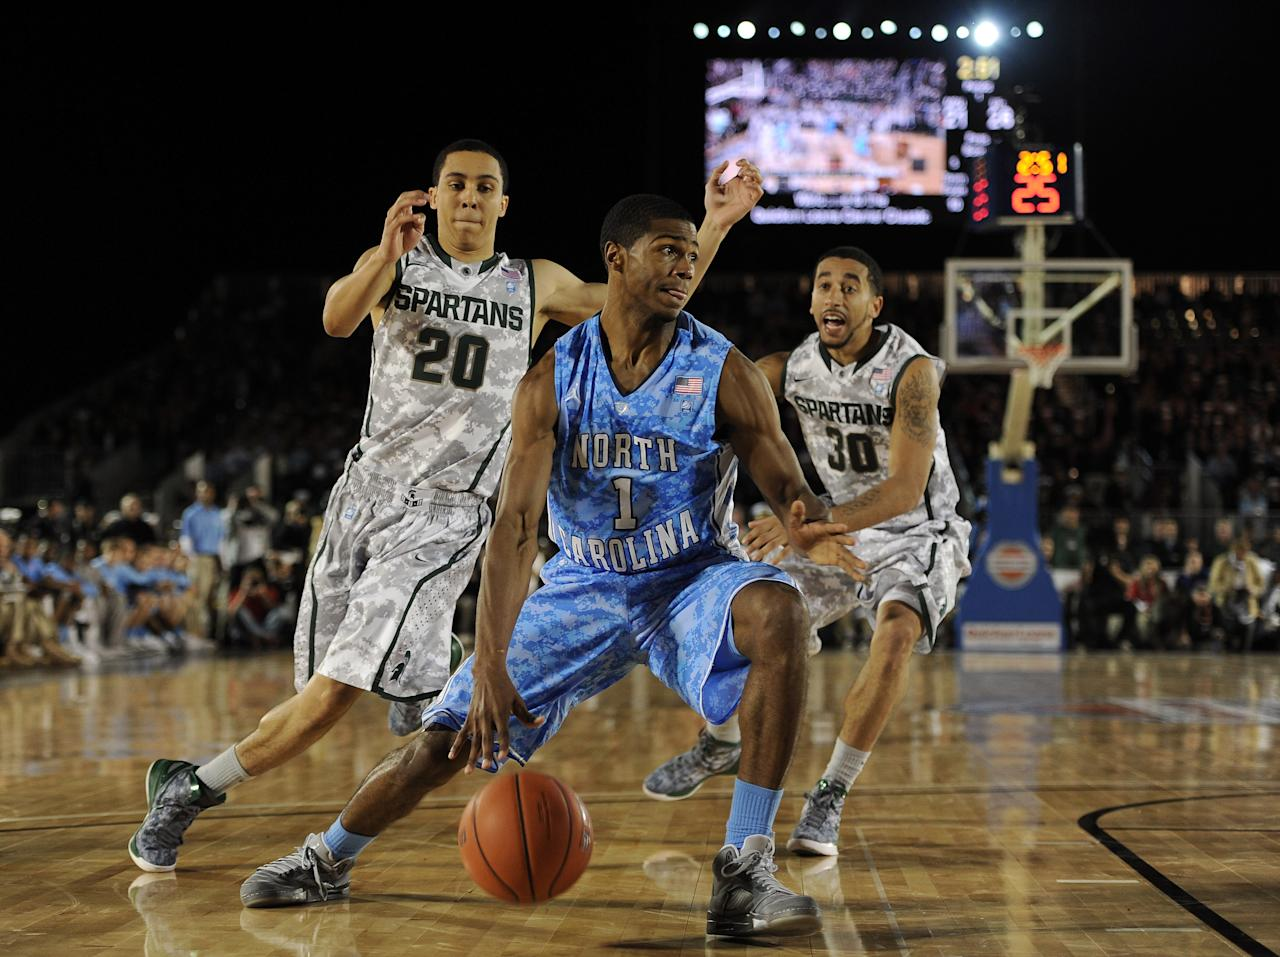 CORONADO, CA - NOVEMBER 11:  Dexter Strickland #1 of the North Carolina Tar Heels dribbles past Travis Trice #20 and Brandon Wood #30 of the Michigan State Spartans during the Quicken Loans Carrier Classic on board the USS Carl Vinson on November 11, 2011 in Coronado, California.  (Photo by Harry How/Getty Images)